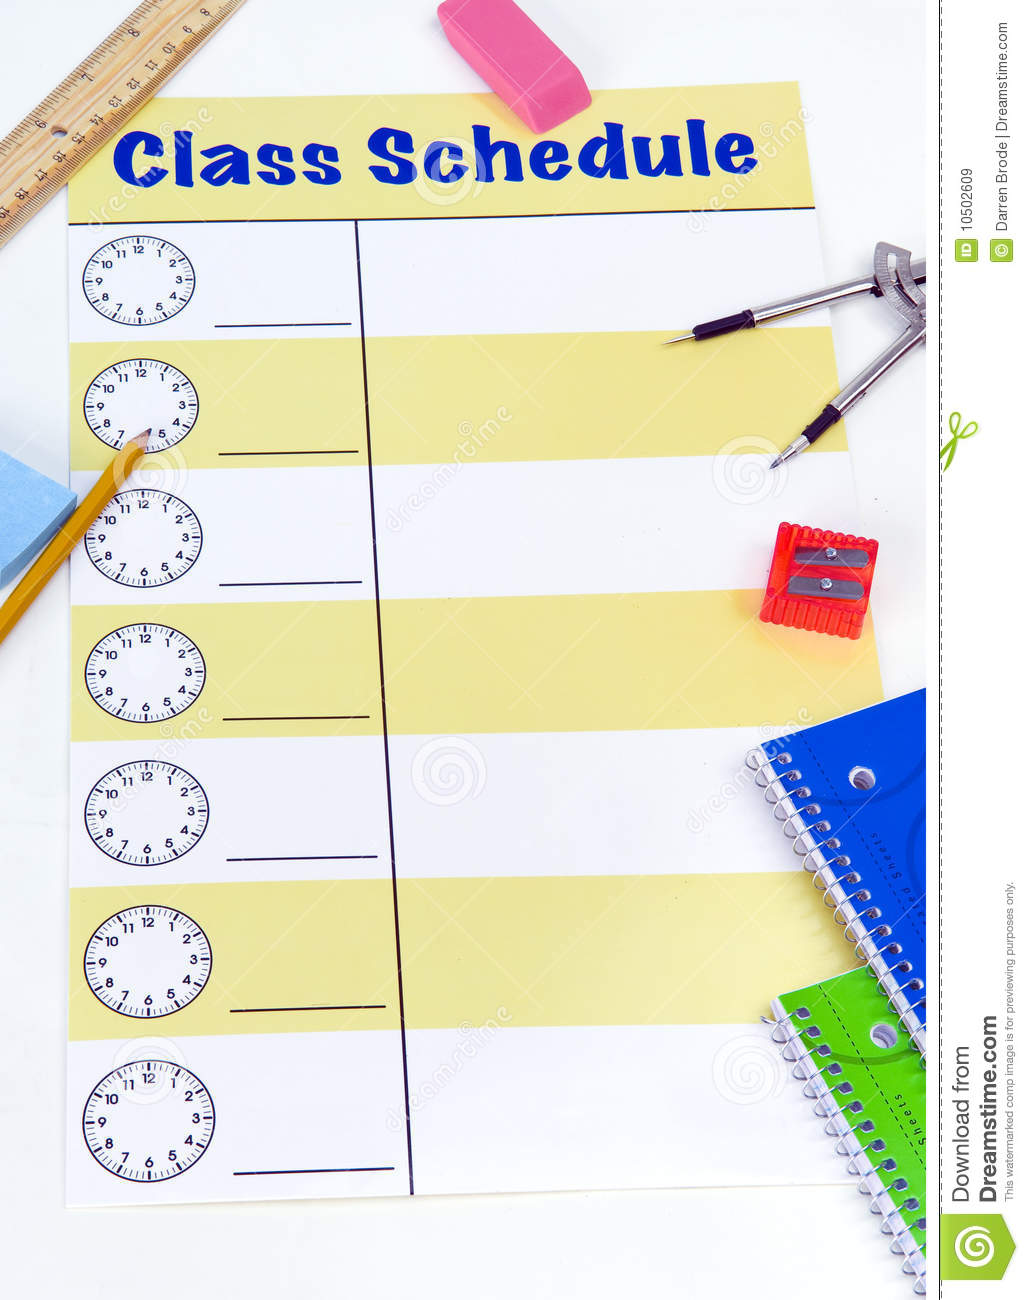 Class Schedule Blank Royalty Free Stock Images - Image: 10502609